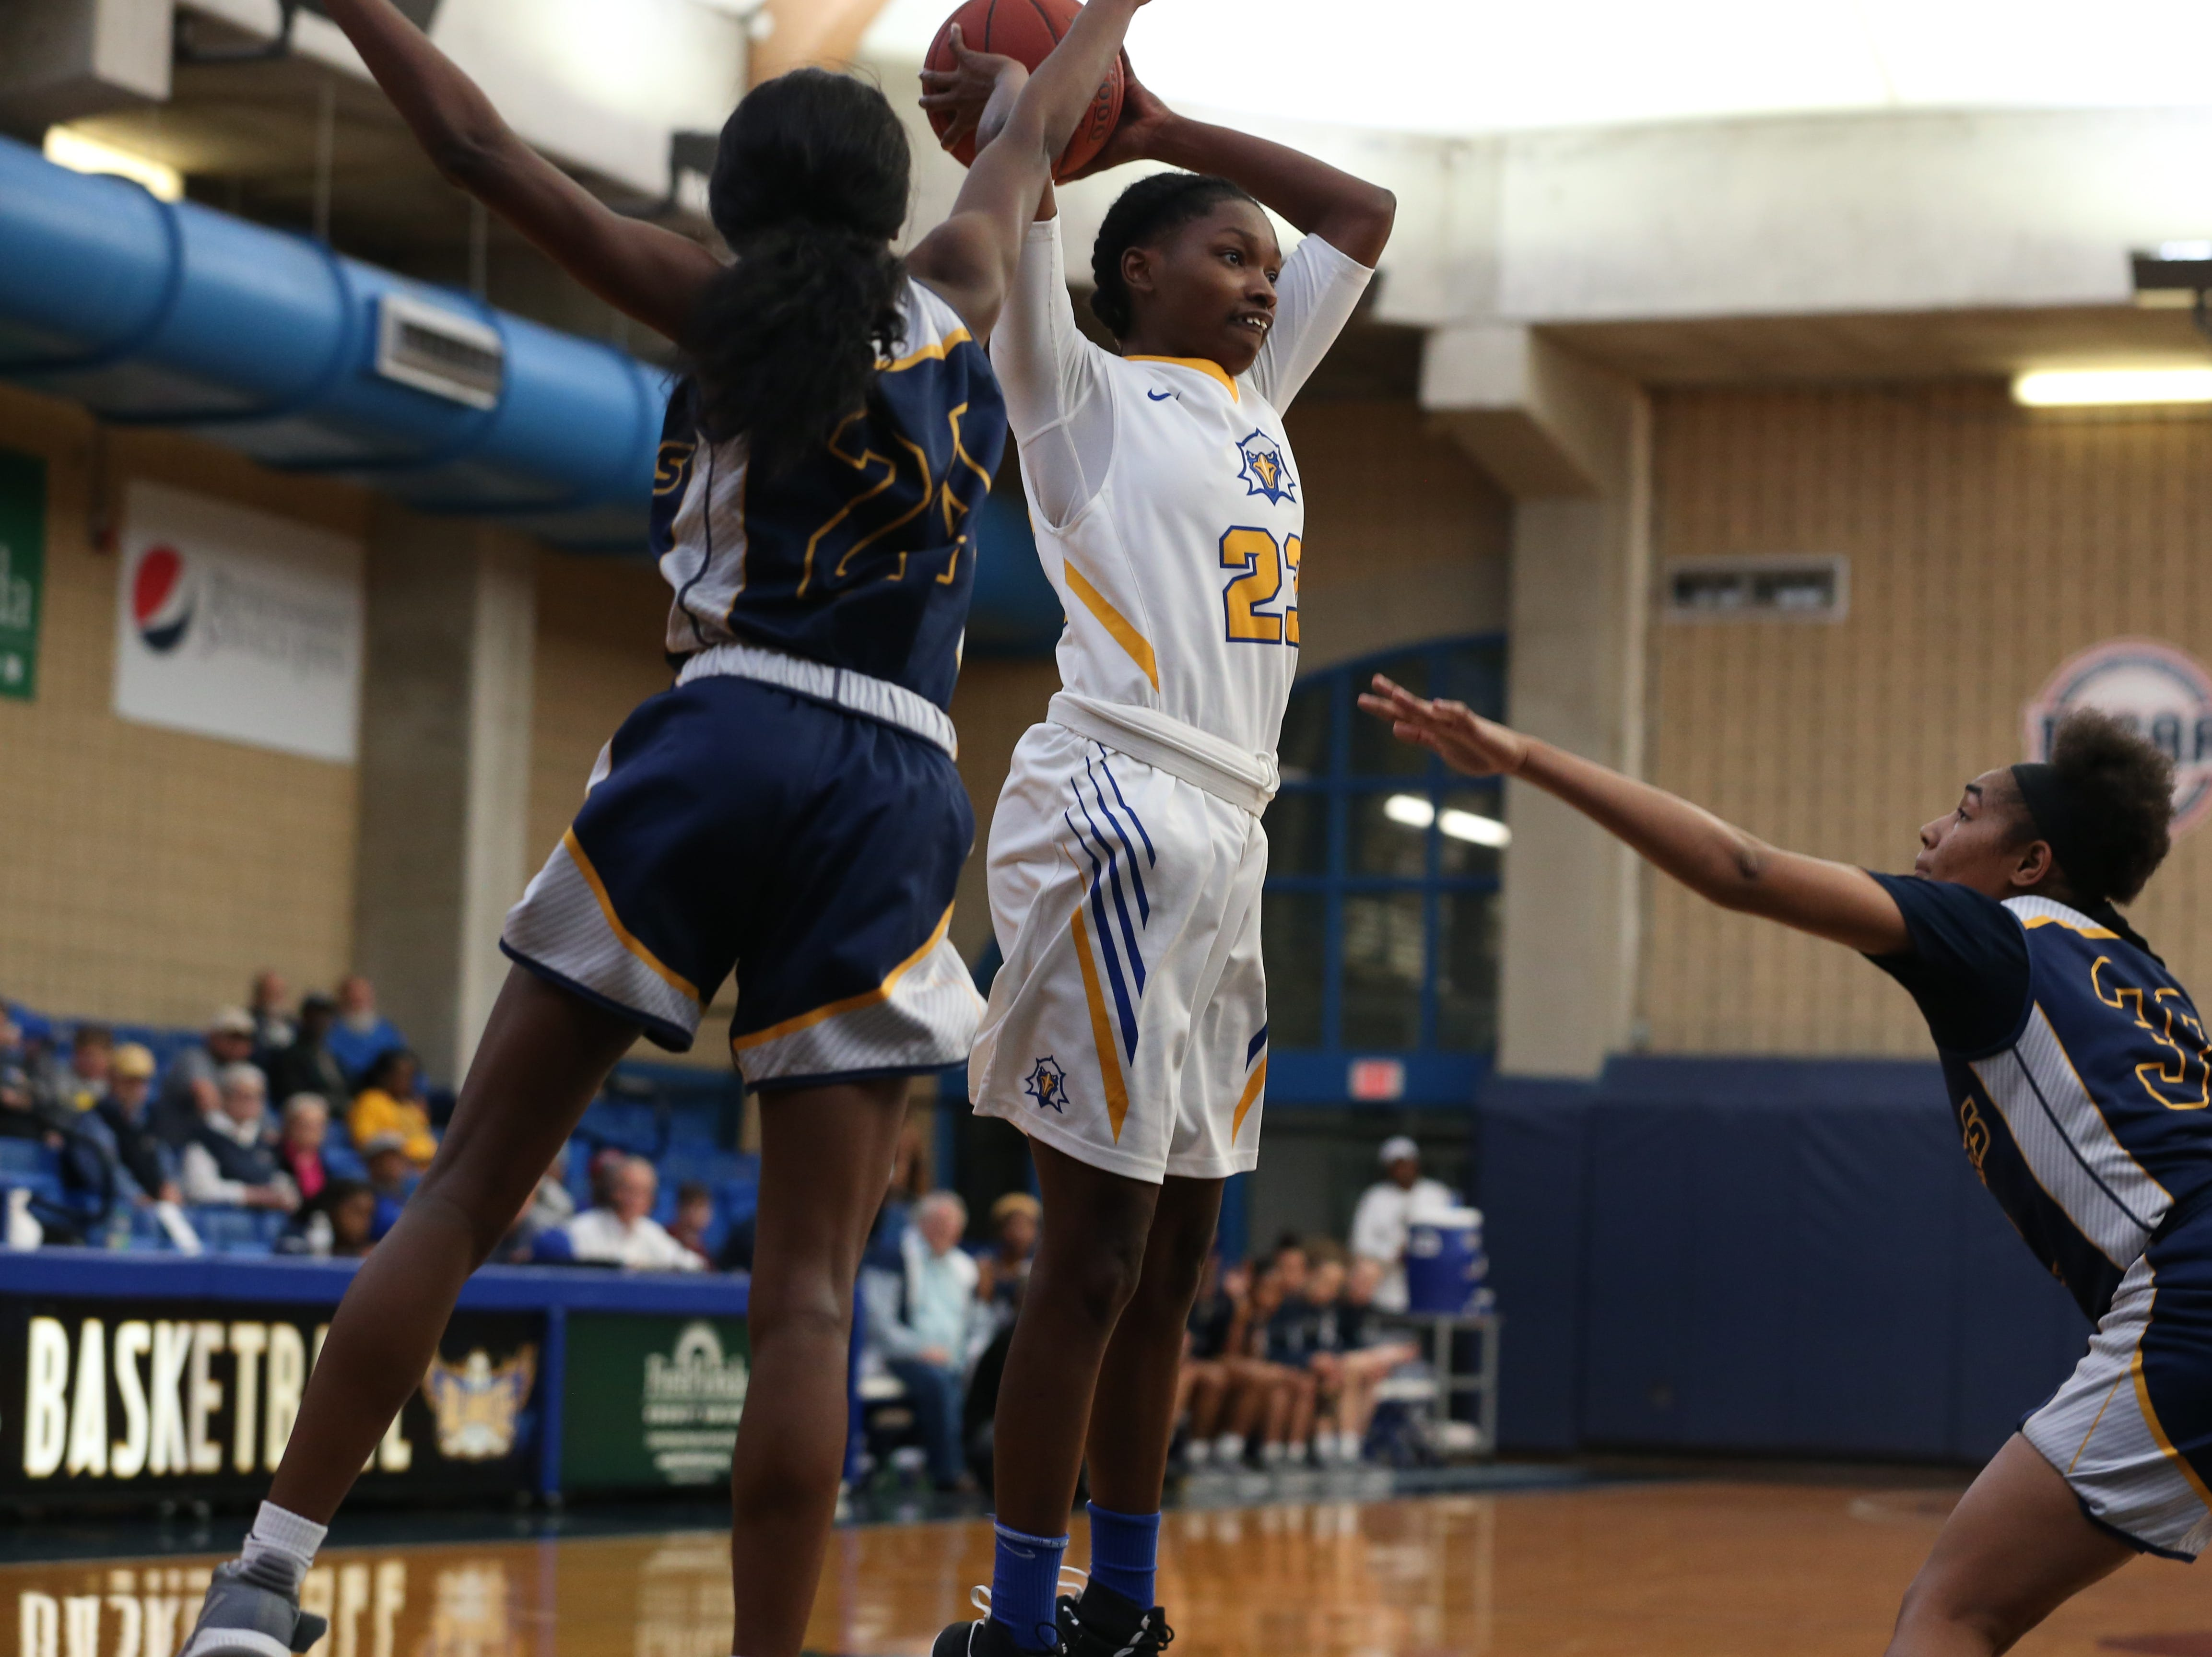 Tallahassee Community College Eagles guard Juliunn Redmond (23) tries to pass over her defender to a teammate. The Tallahassee Community College Eagles host the Gulf Coast State College Commodores in a conference match-up in the Eagledome, Saturday, Jan. 5, 2019.